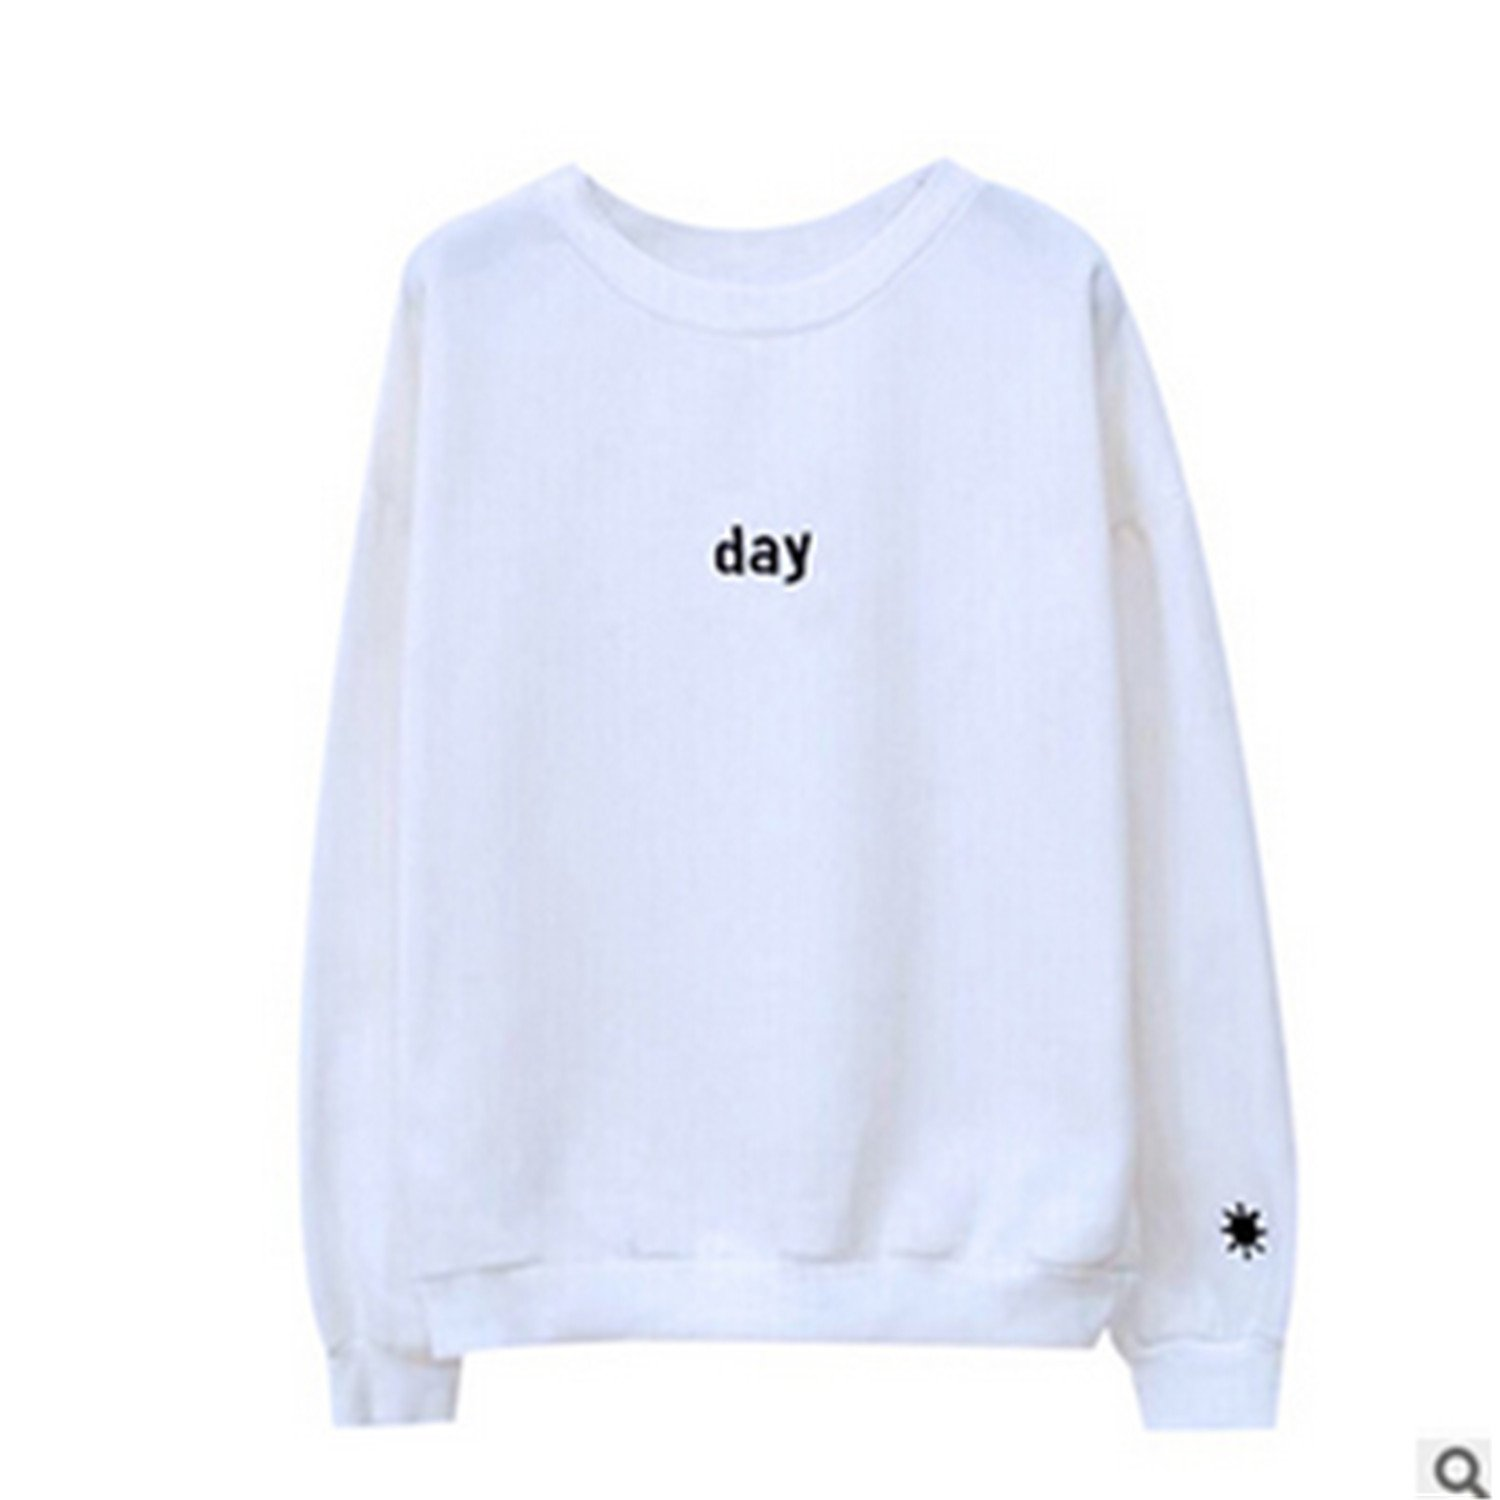 Henraly Letters Day&night Embroidered Sweatshirt Women Long Sleeve Hoodie Loose Sweatshirts at Amazon Womens Clothing store: